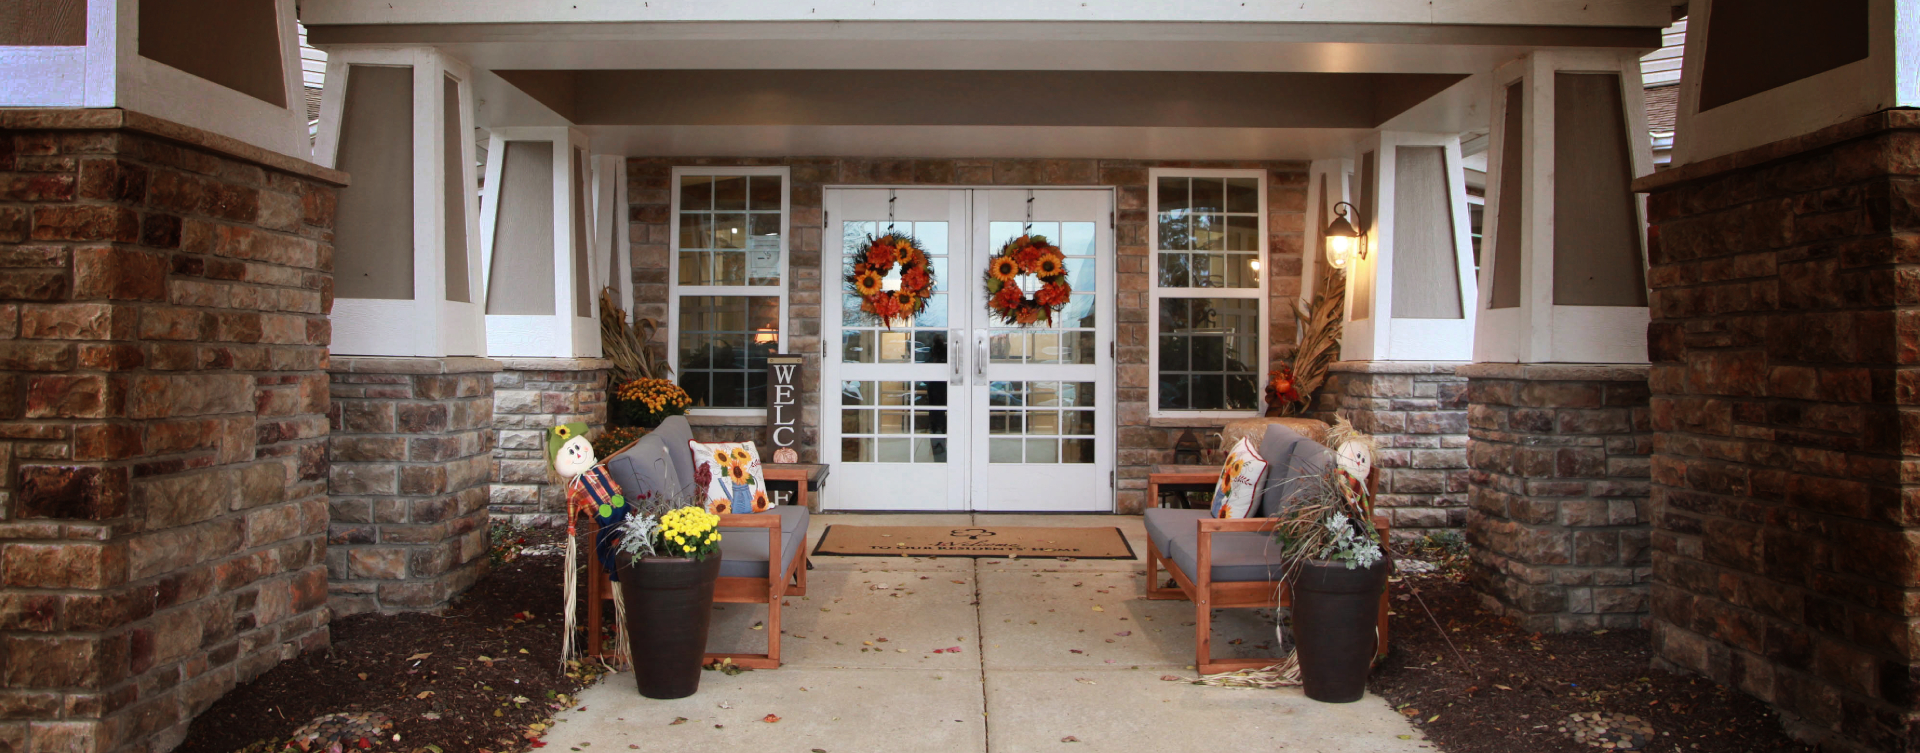 Enjoy conversations with friends on the porch at Bickford of St. Charles